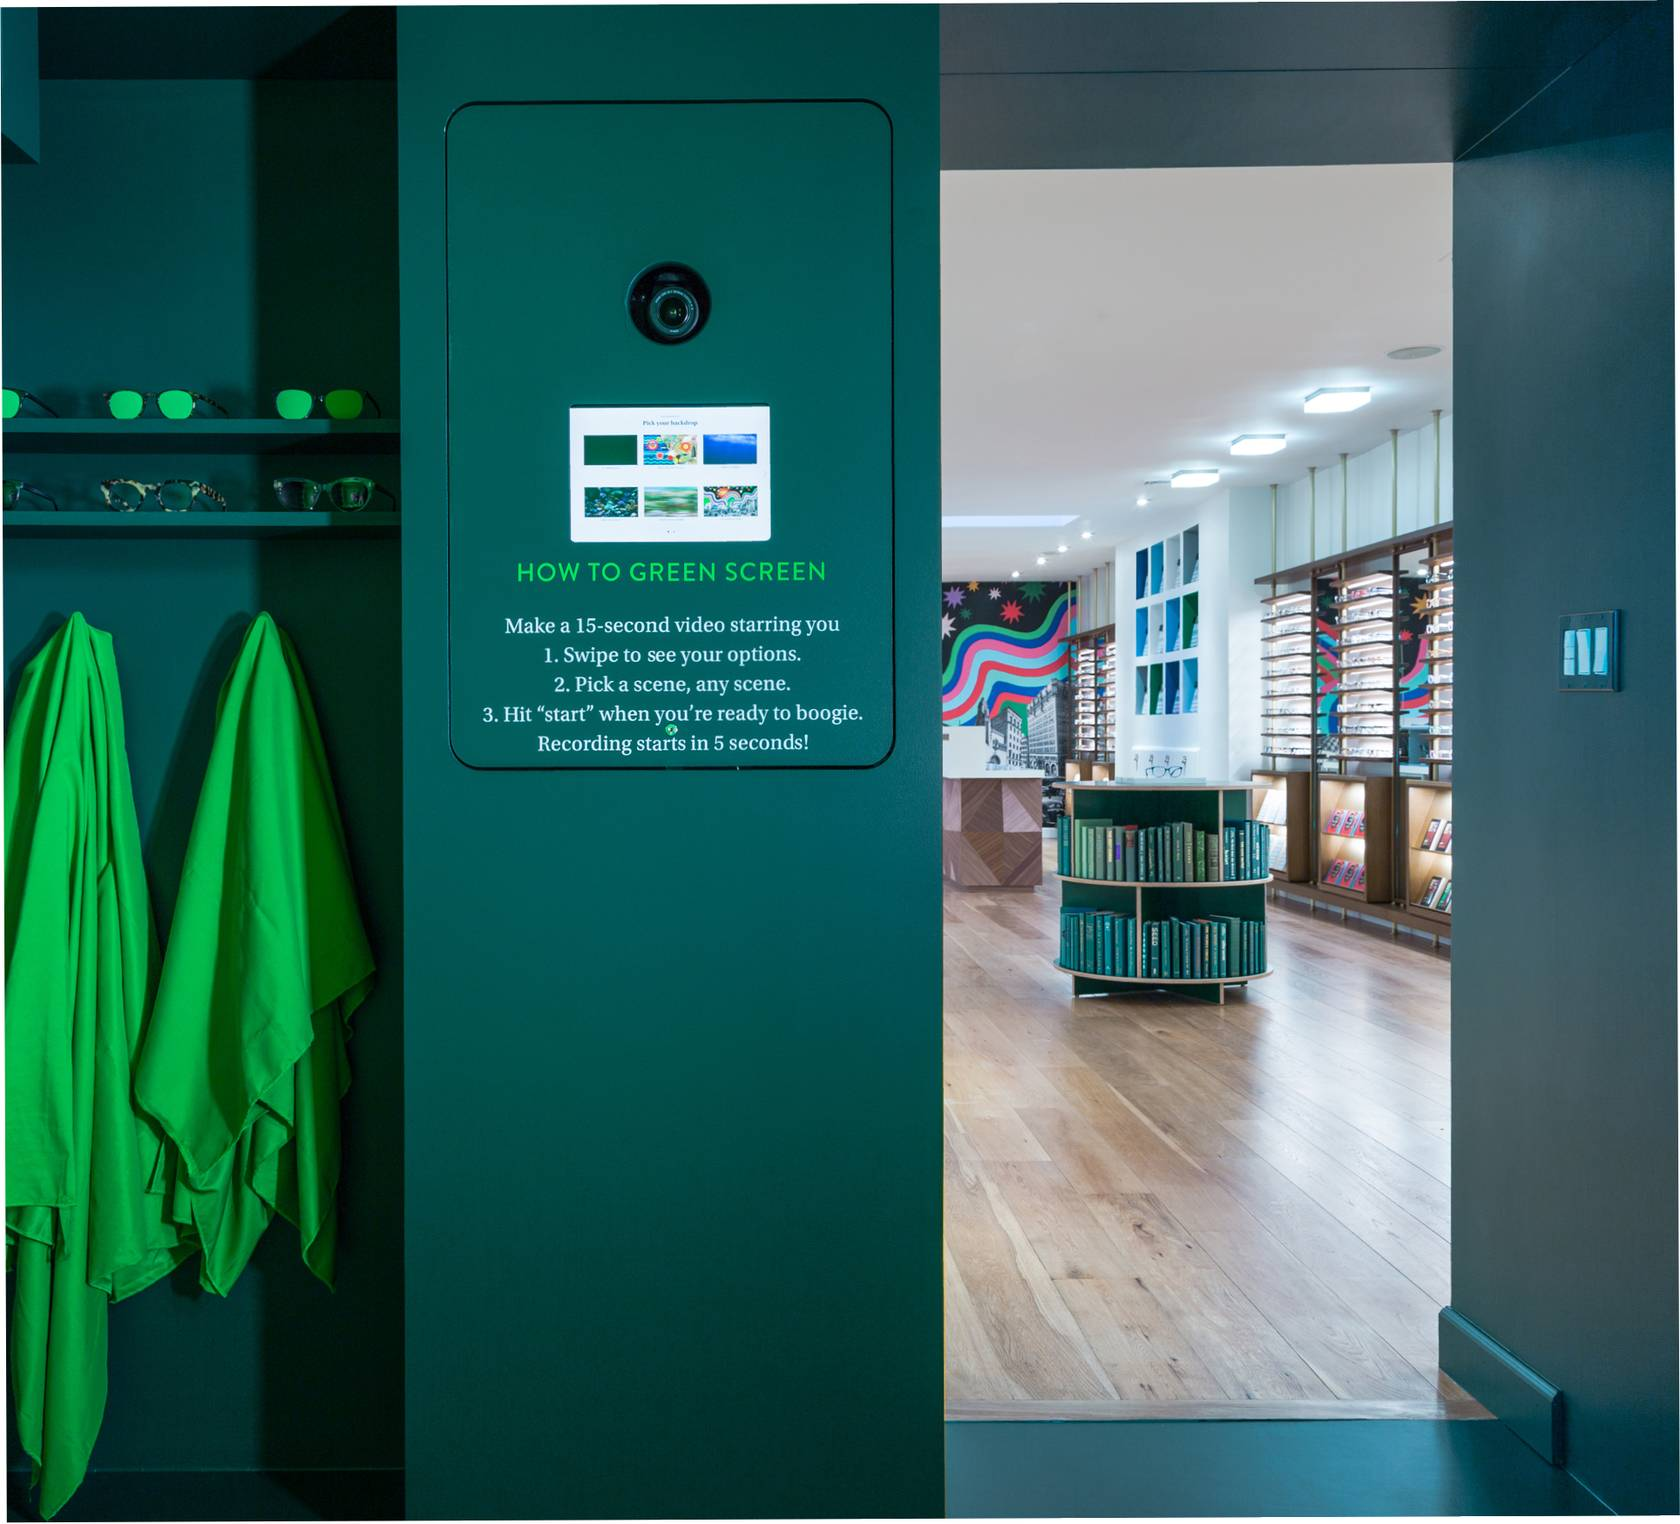 Warby Parker green room instagrammable retail store Luxe Digital Future online luxury retail